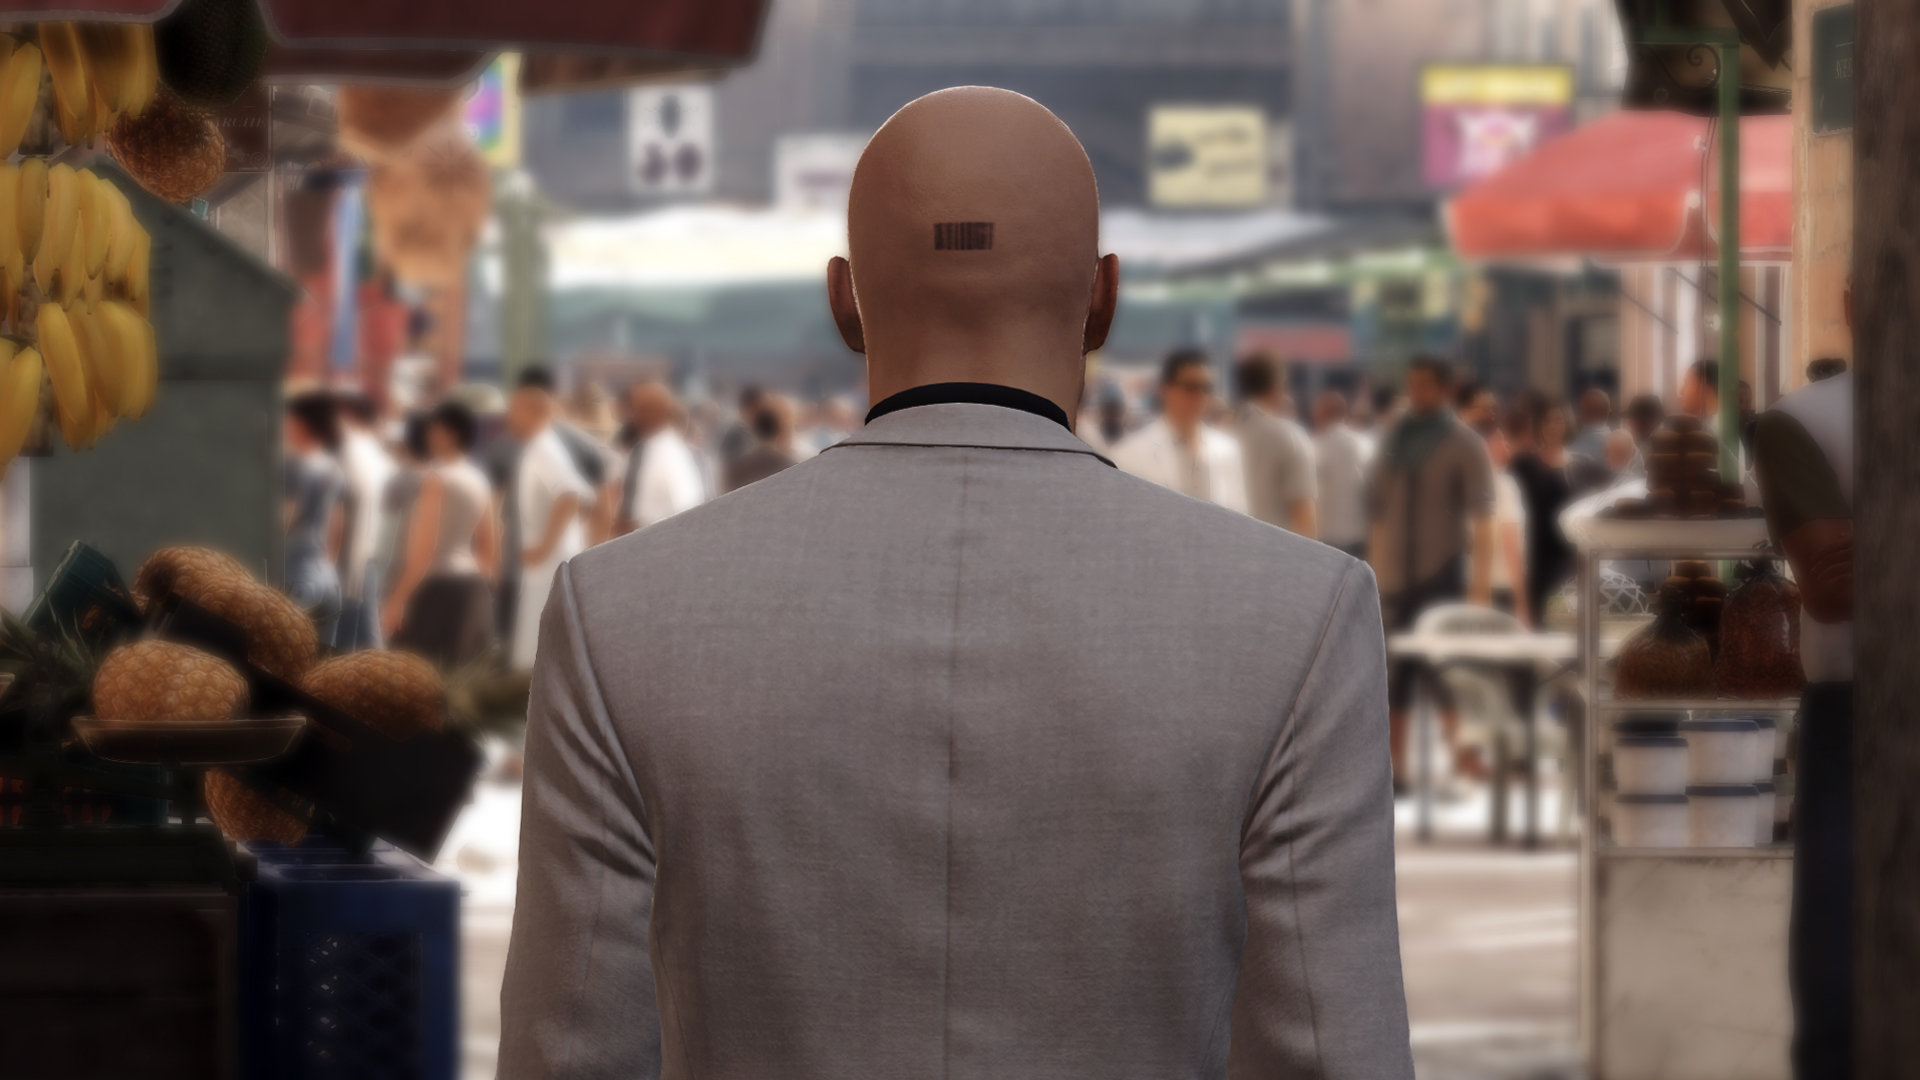 Mac gamers are in for a blast as Hitman arrives on macOS